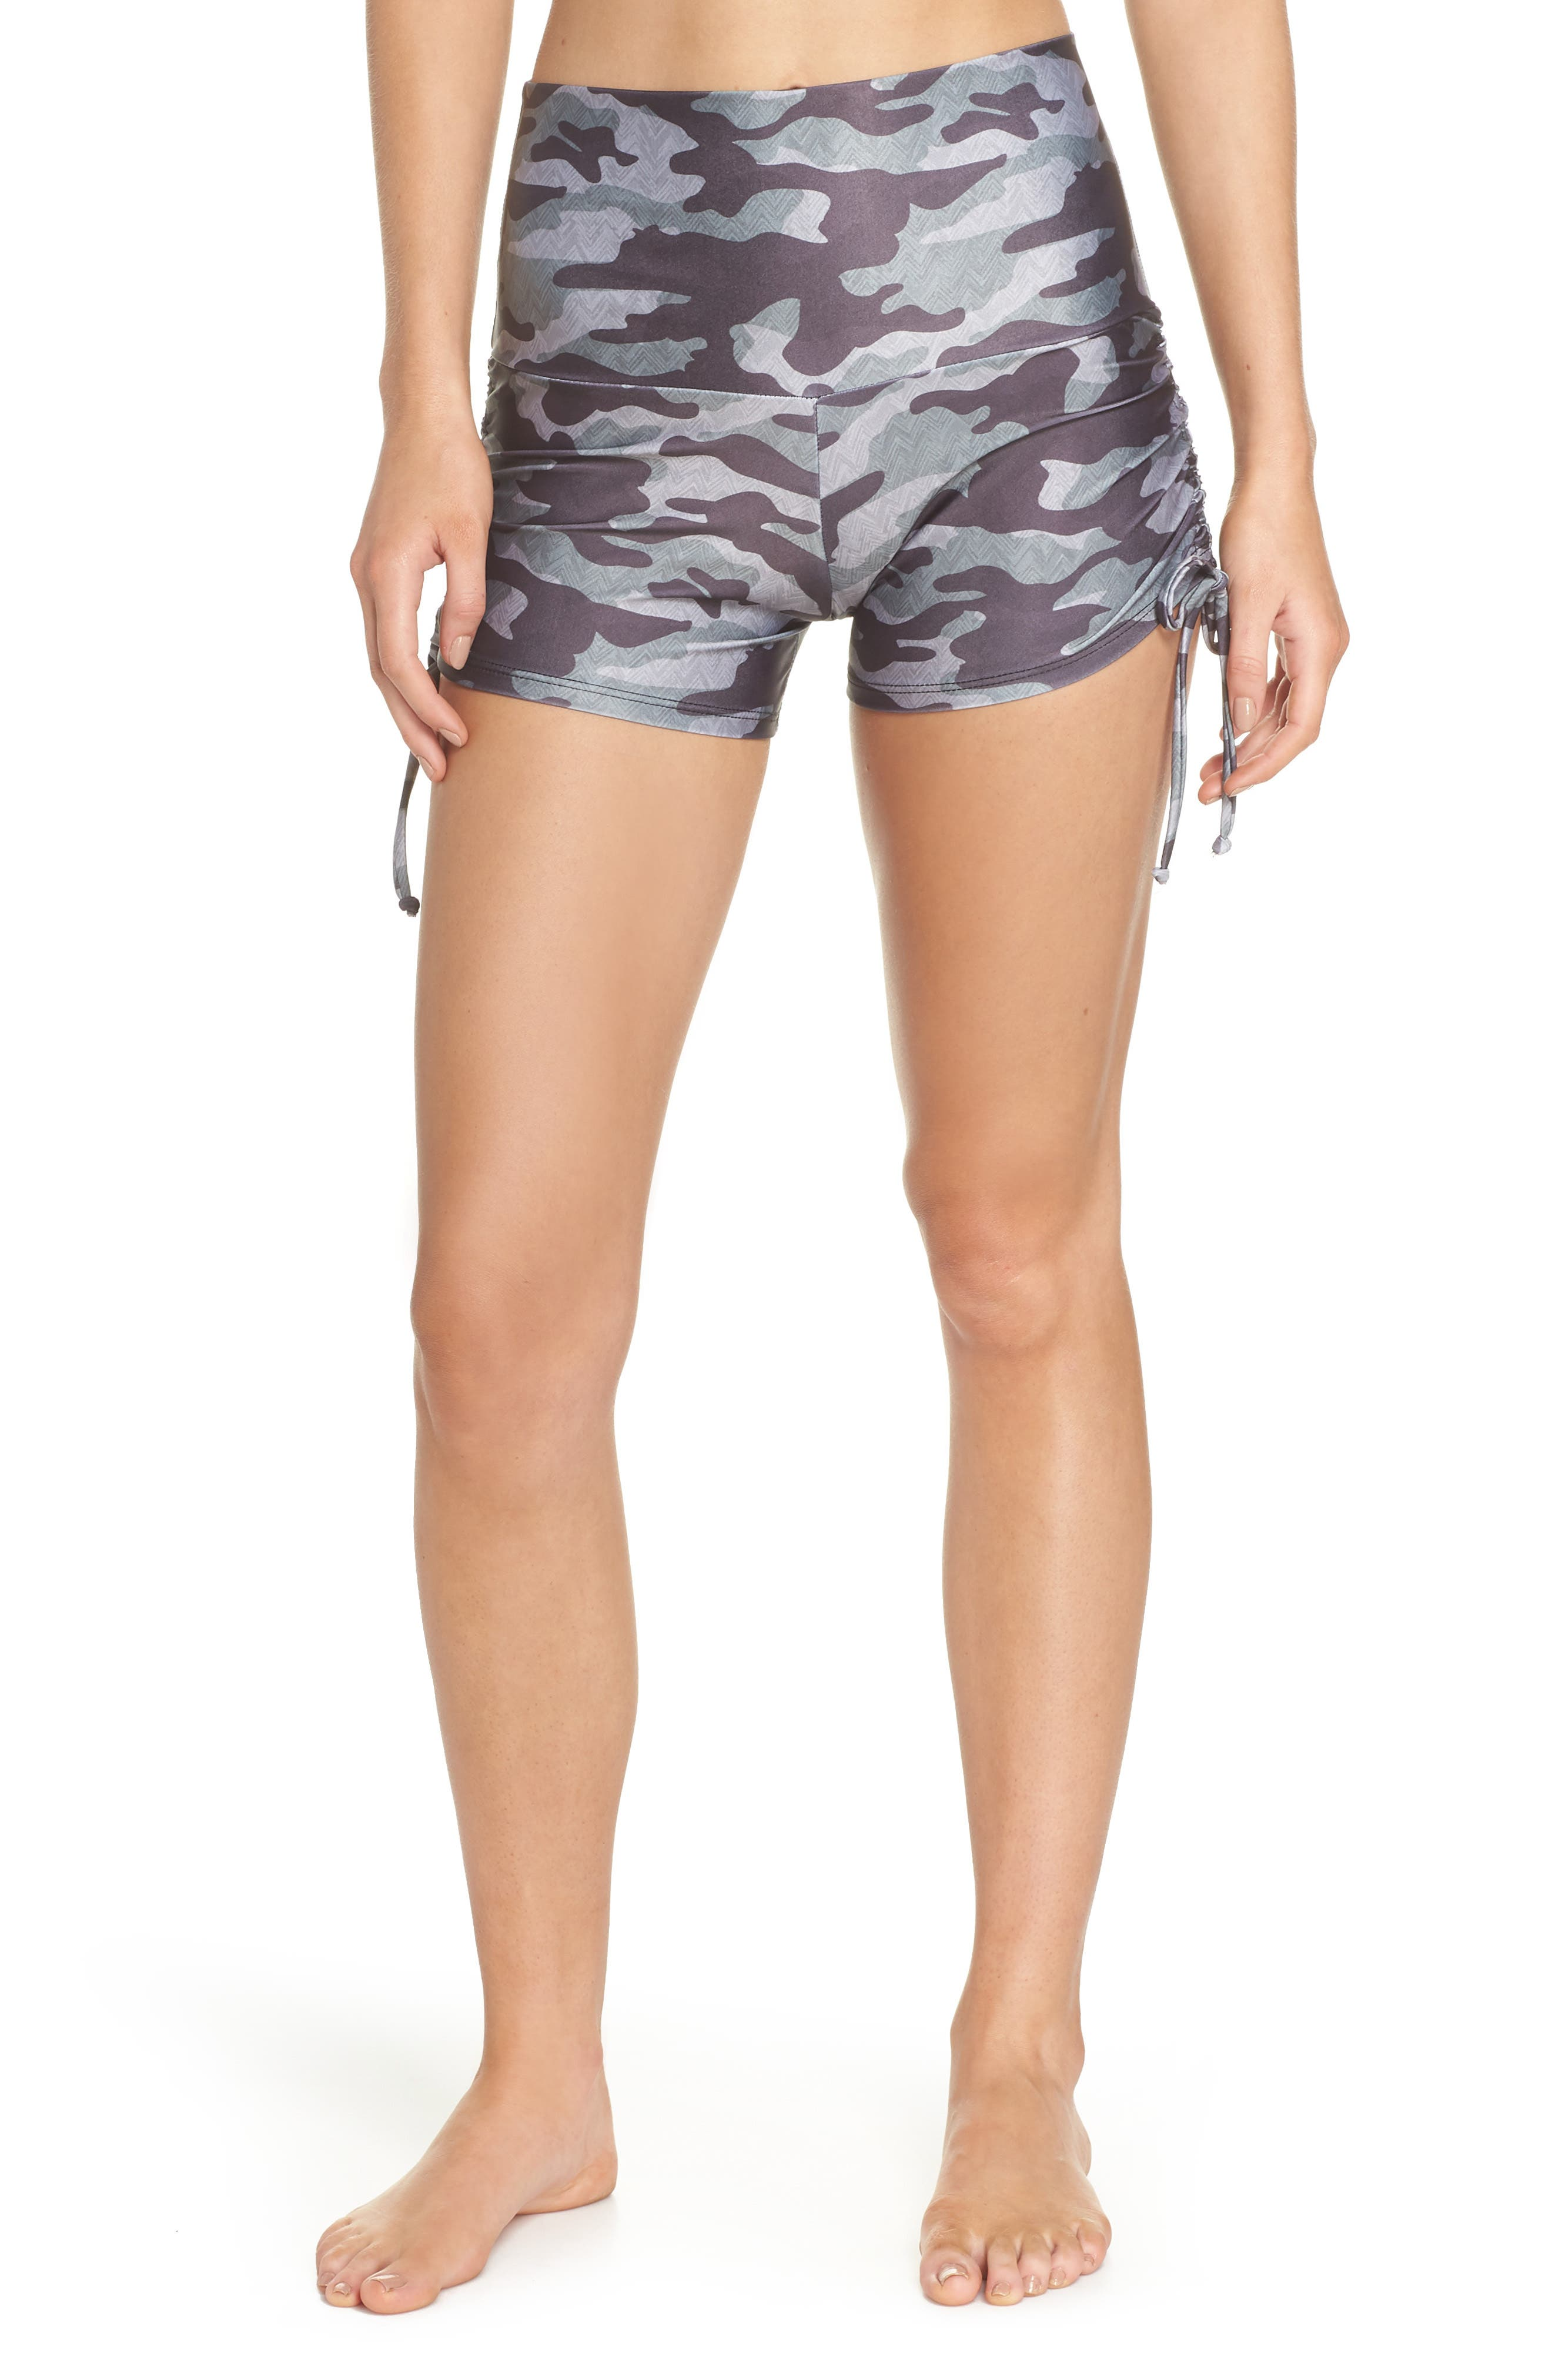 La Coqueta Swim Bottoms,                             Main thumbnail 1, color,                             Distressed Camo